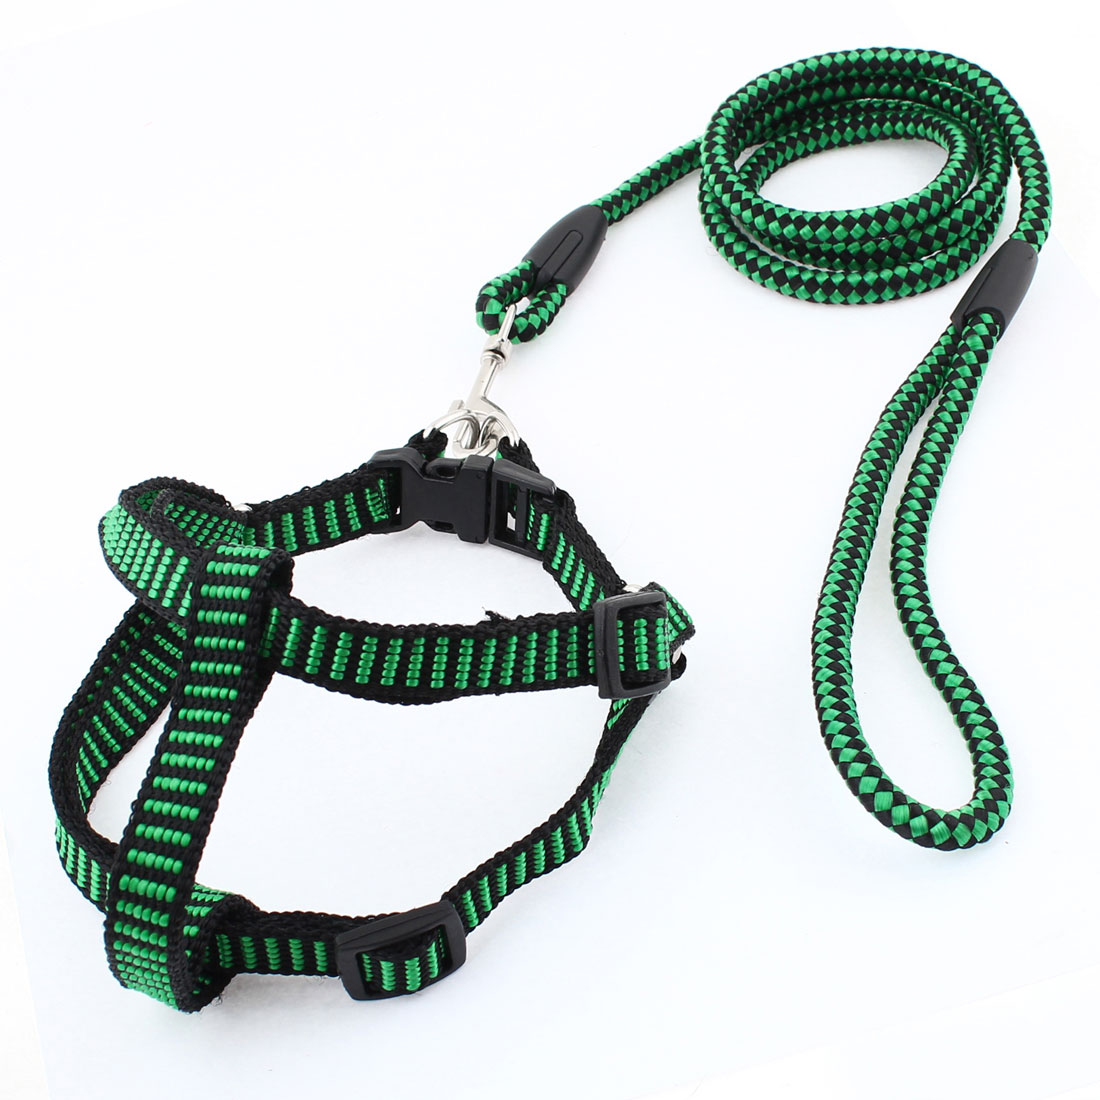 0.8cm Width Black Green Nylon Ajustable Pet Dog Harness Halter Leash